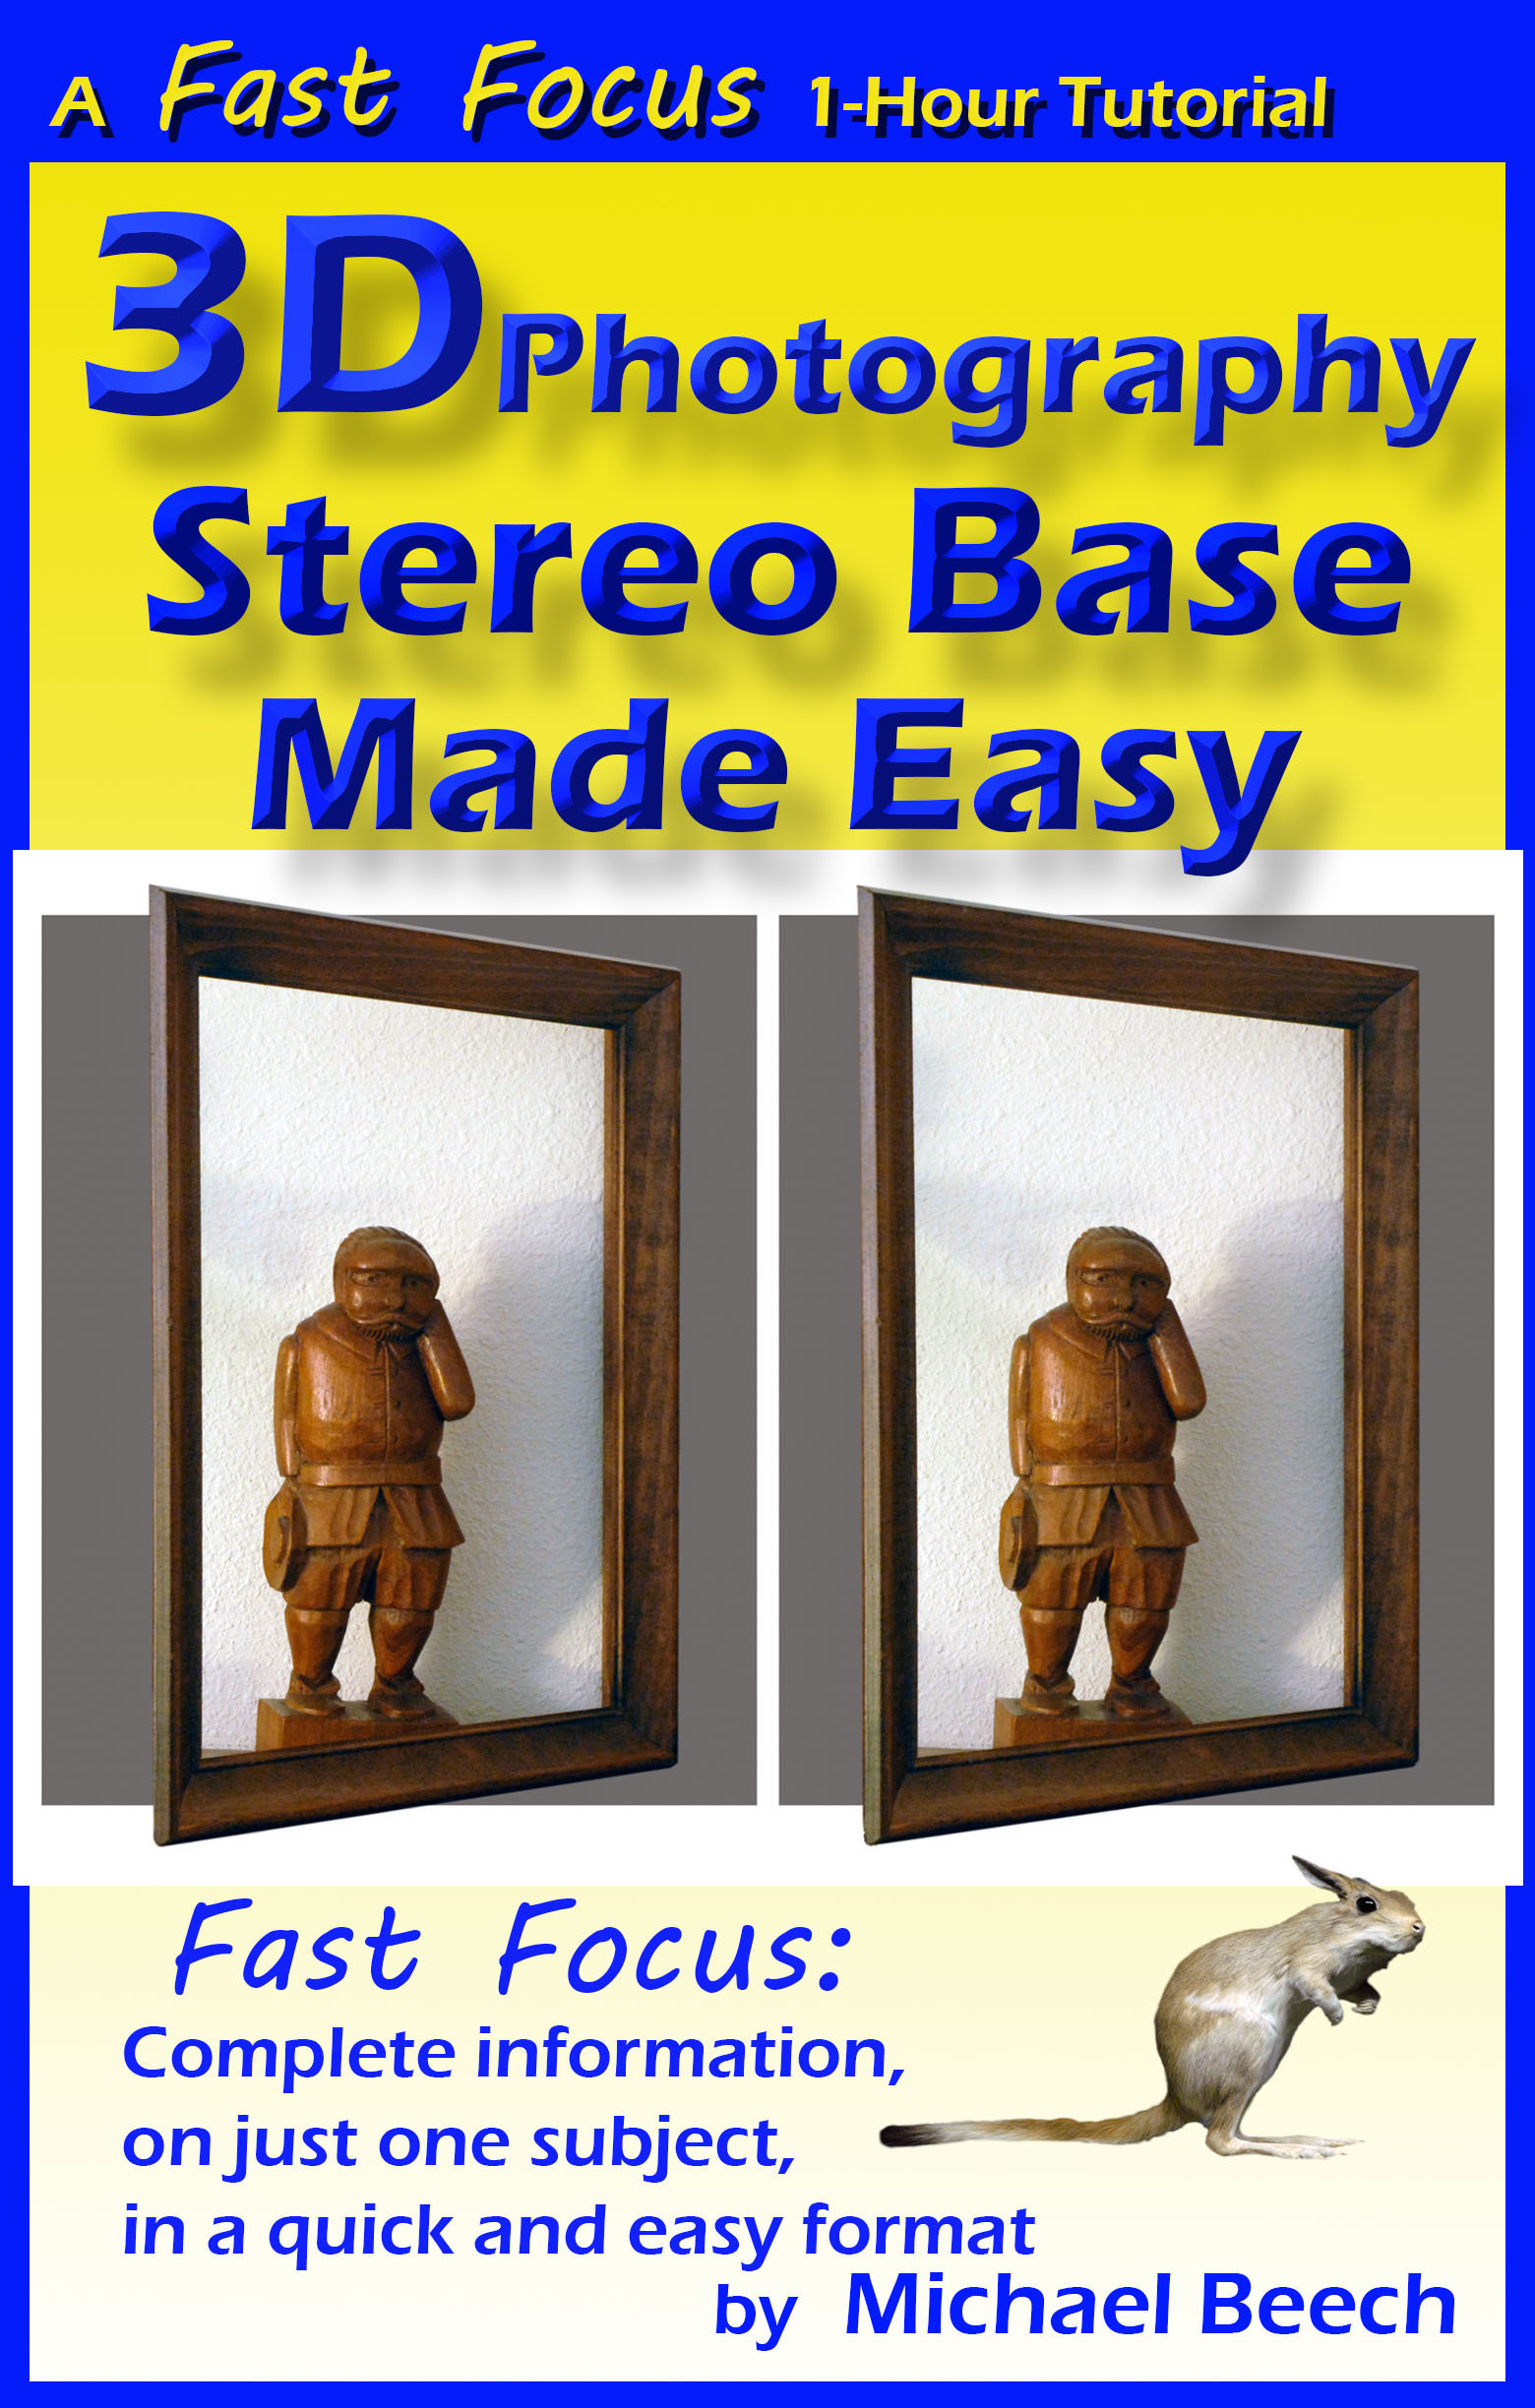 3D Photography Stereo Base Made Easy Michael Beech